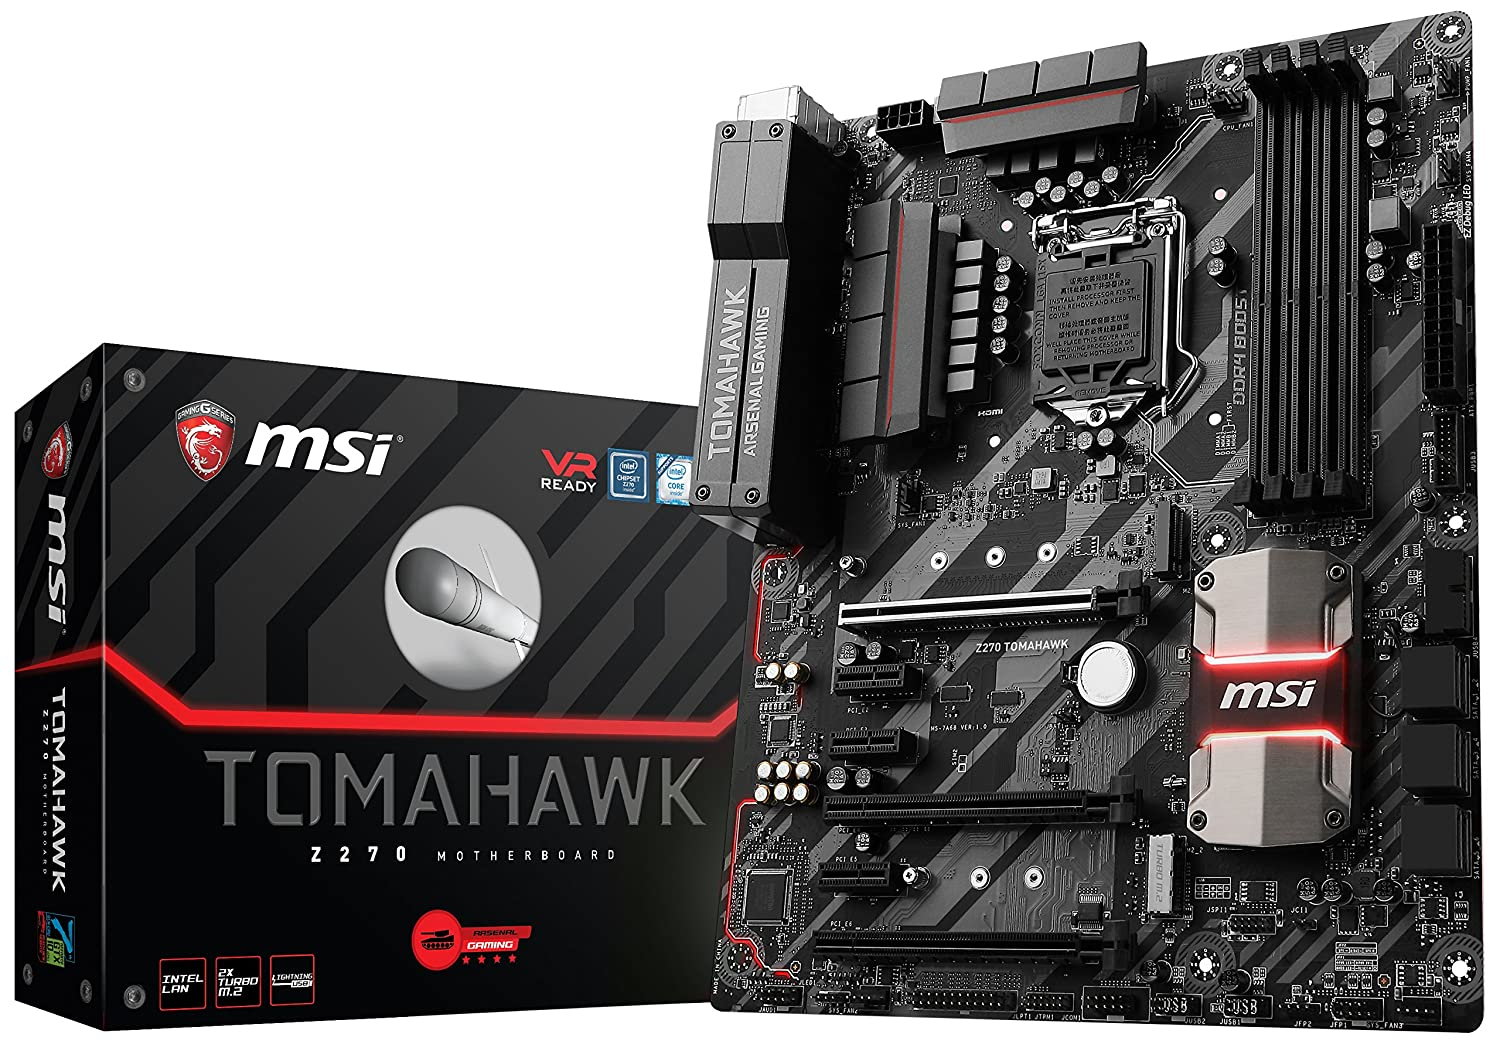 Msi Arsenal Gaming Intel Z270 Ddr4 Hdmi Usb 3 Crossfire Labeled Puter Parts Diagram Also Atx Motherboard With Labels Tomahawk Computers Accessories